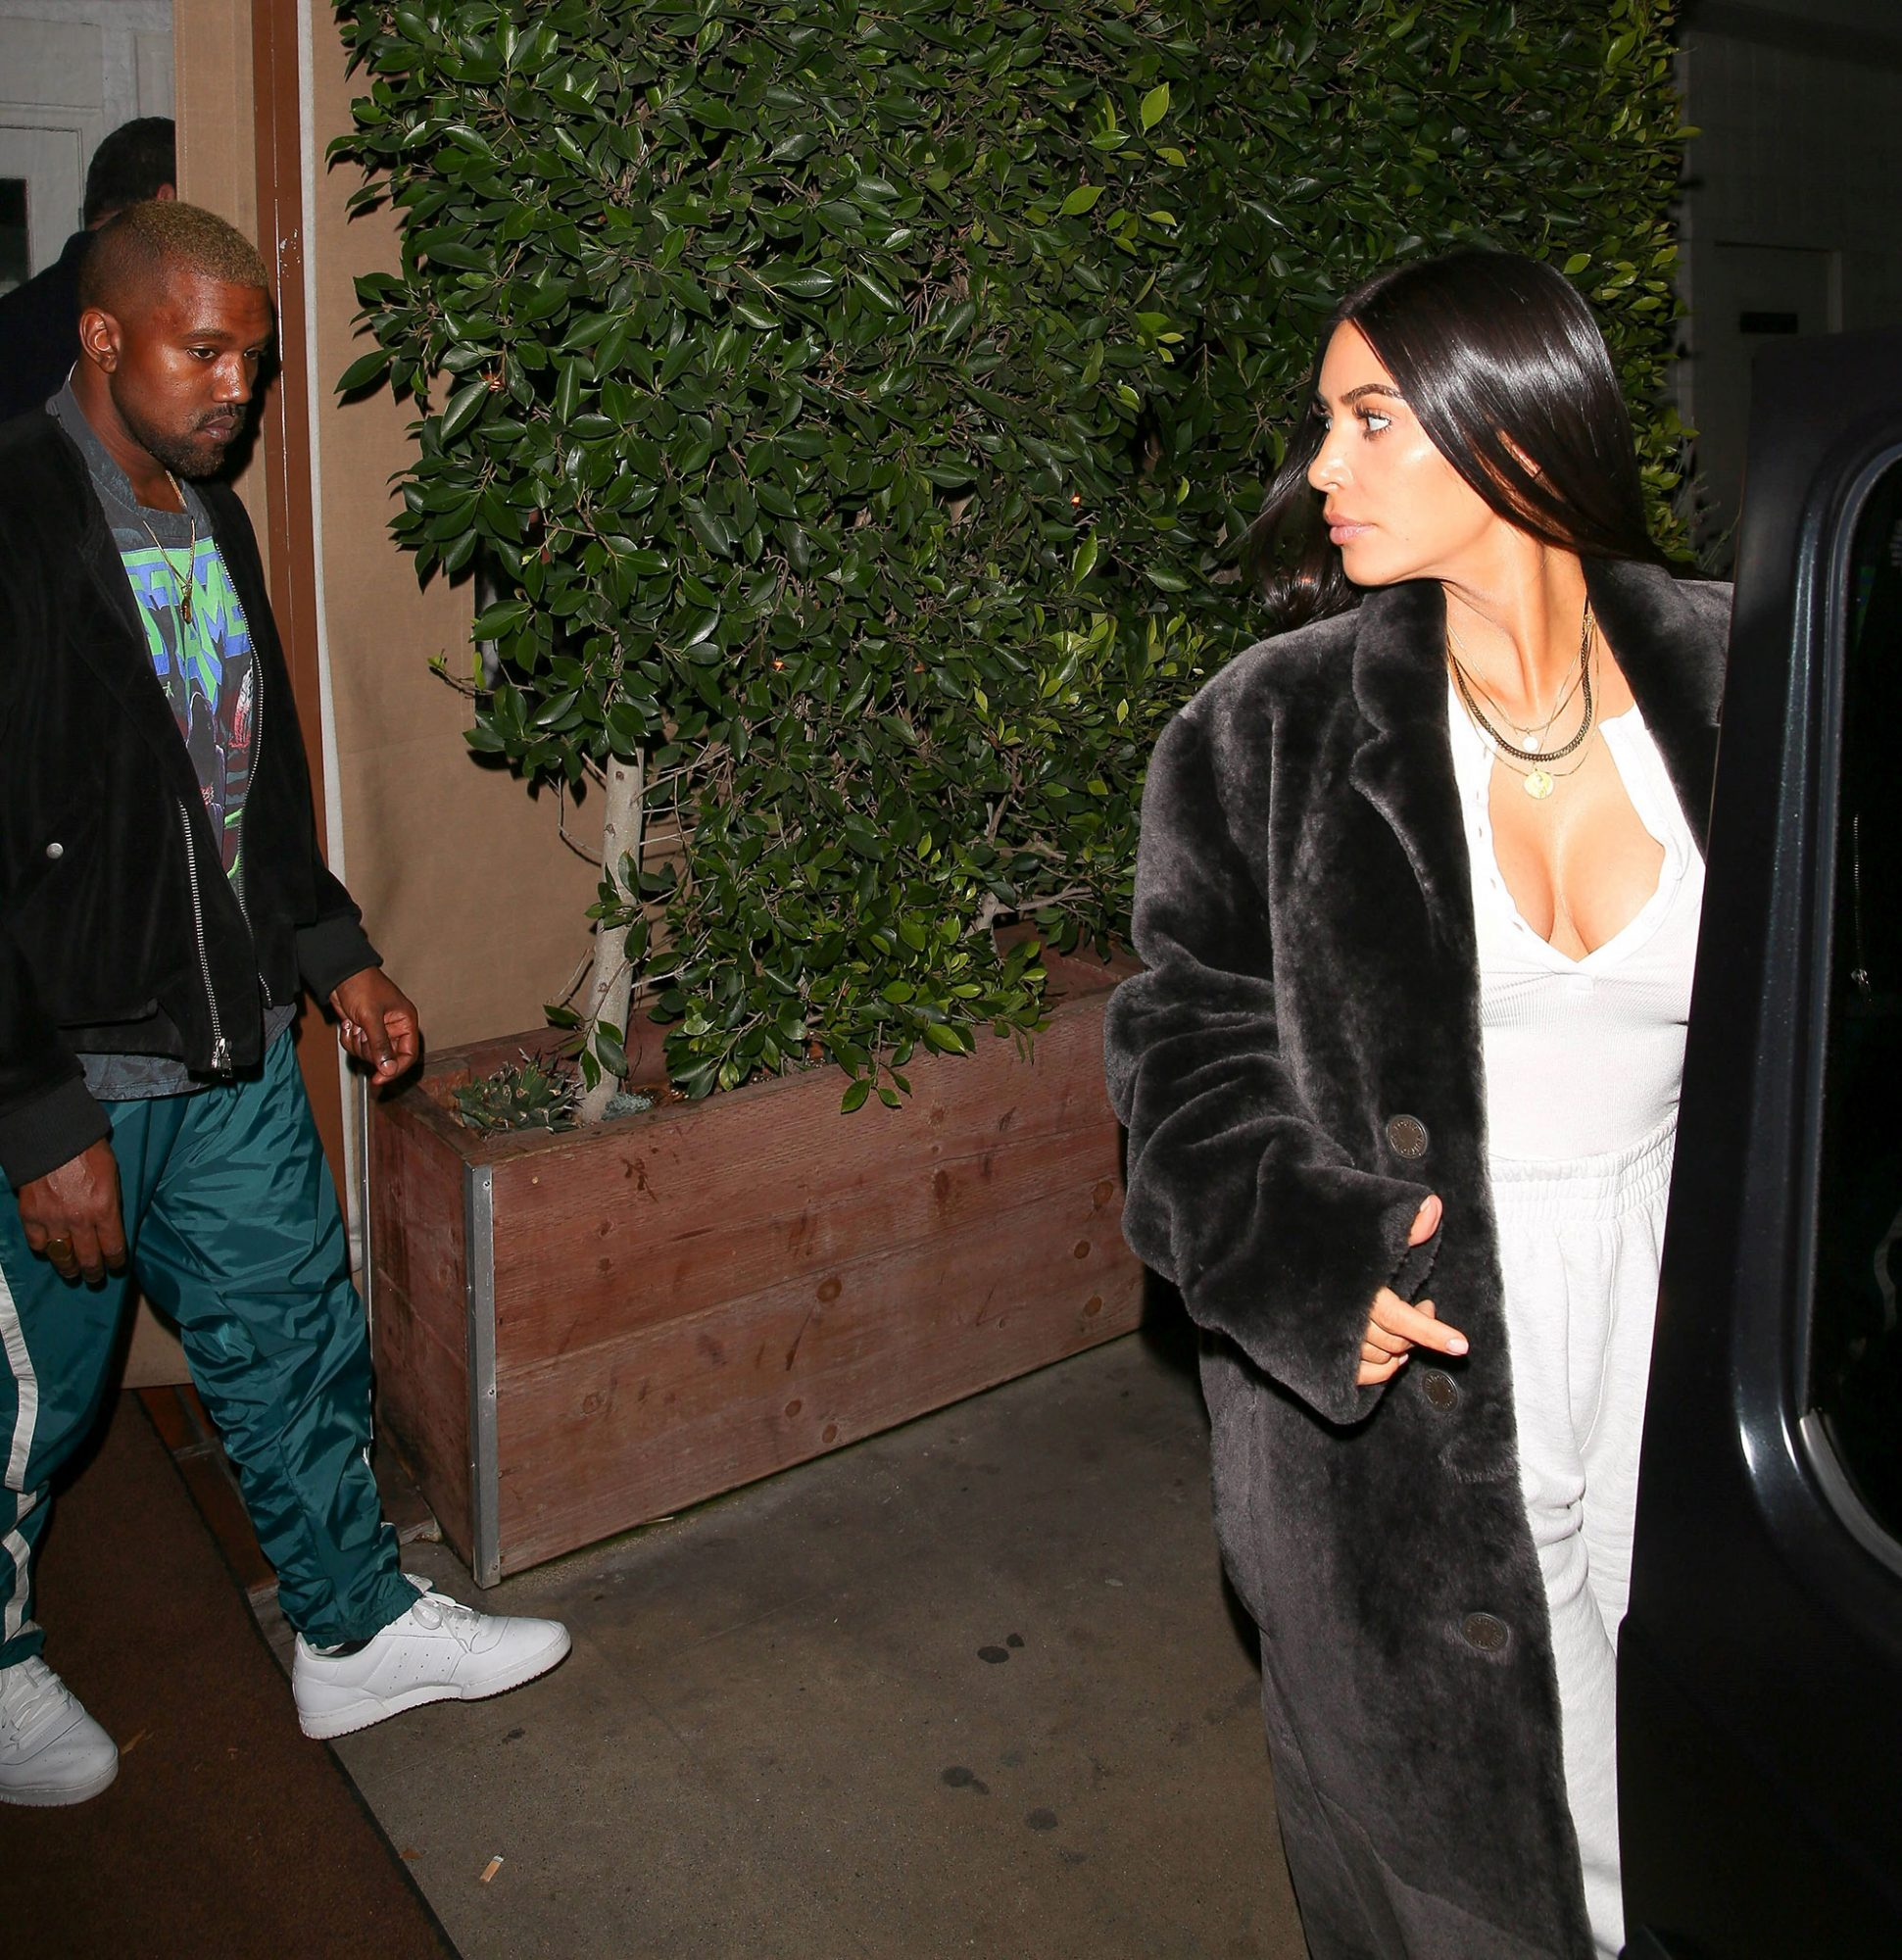 *PREMIUM EXCLUSIVE* Kim Kardashian and Kanye still going strong despite a rocky few months **NO WEB, WEB EMBARGO UNTIL 11AM PST ON 12/20/16**